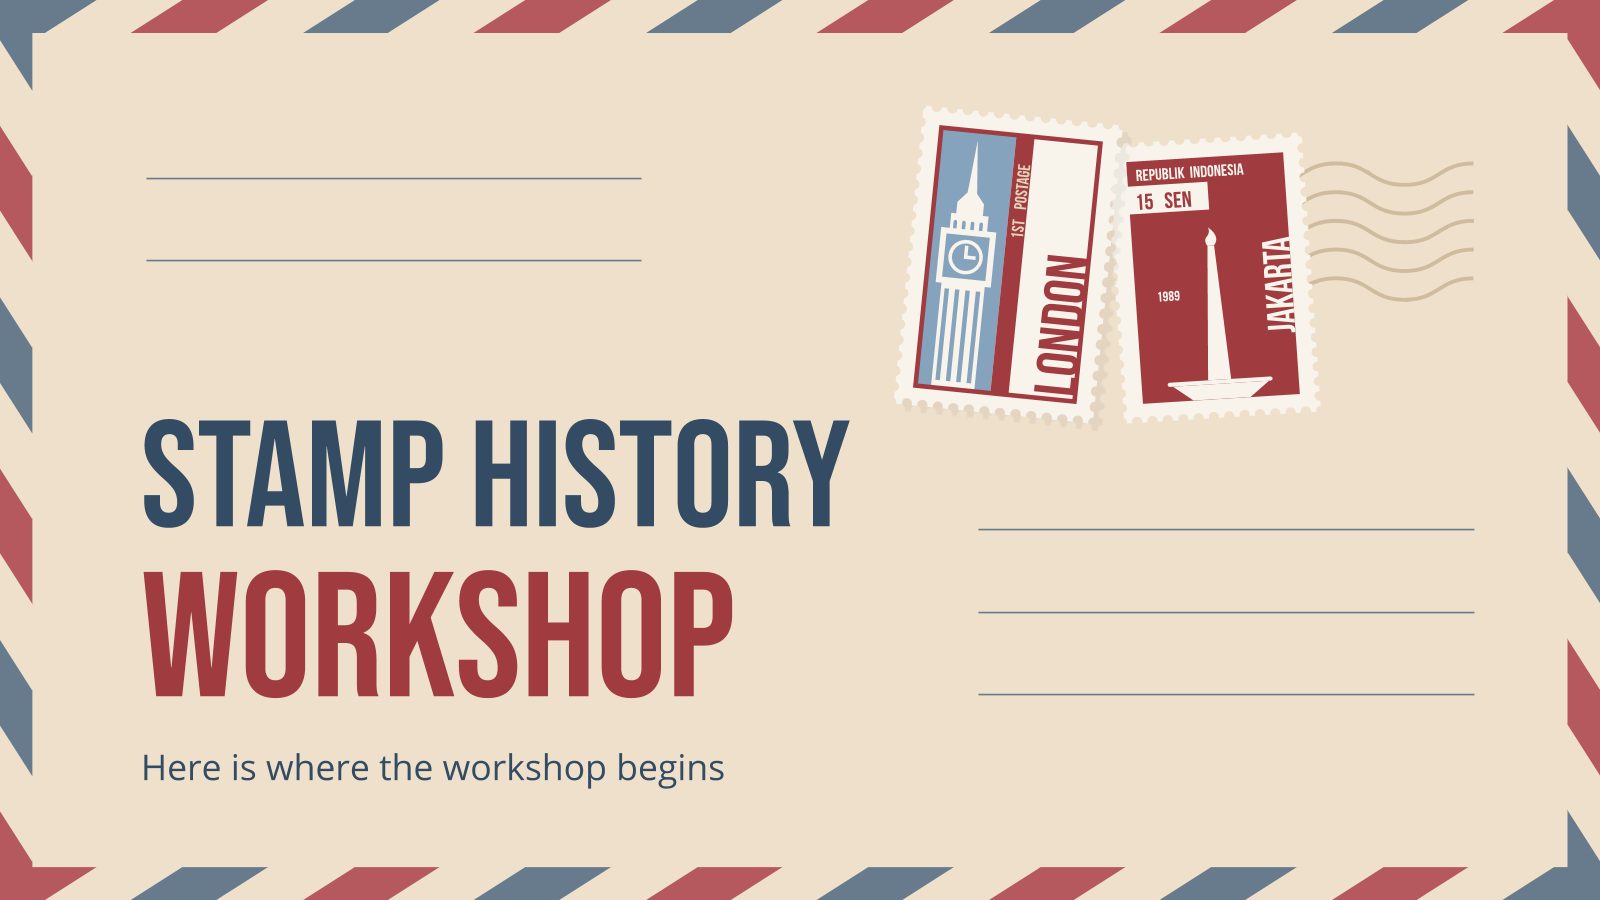 Stamp History Workshop presentation template